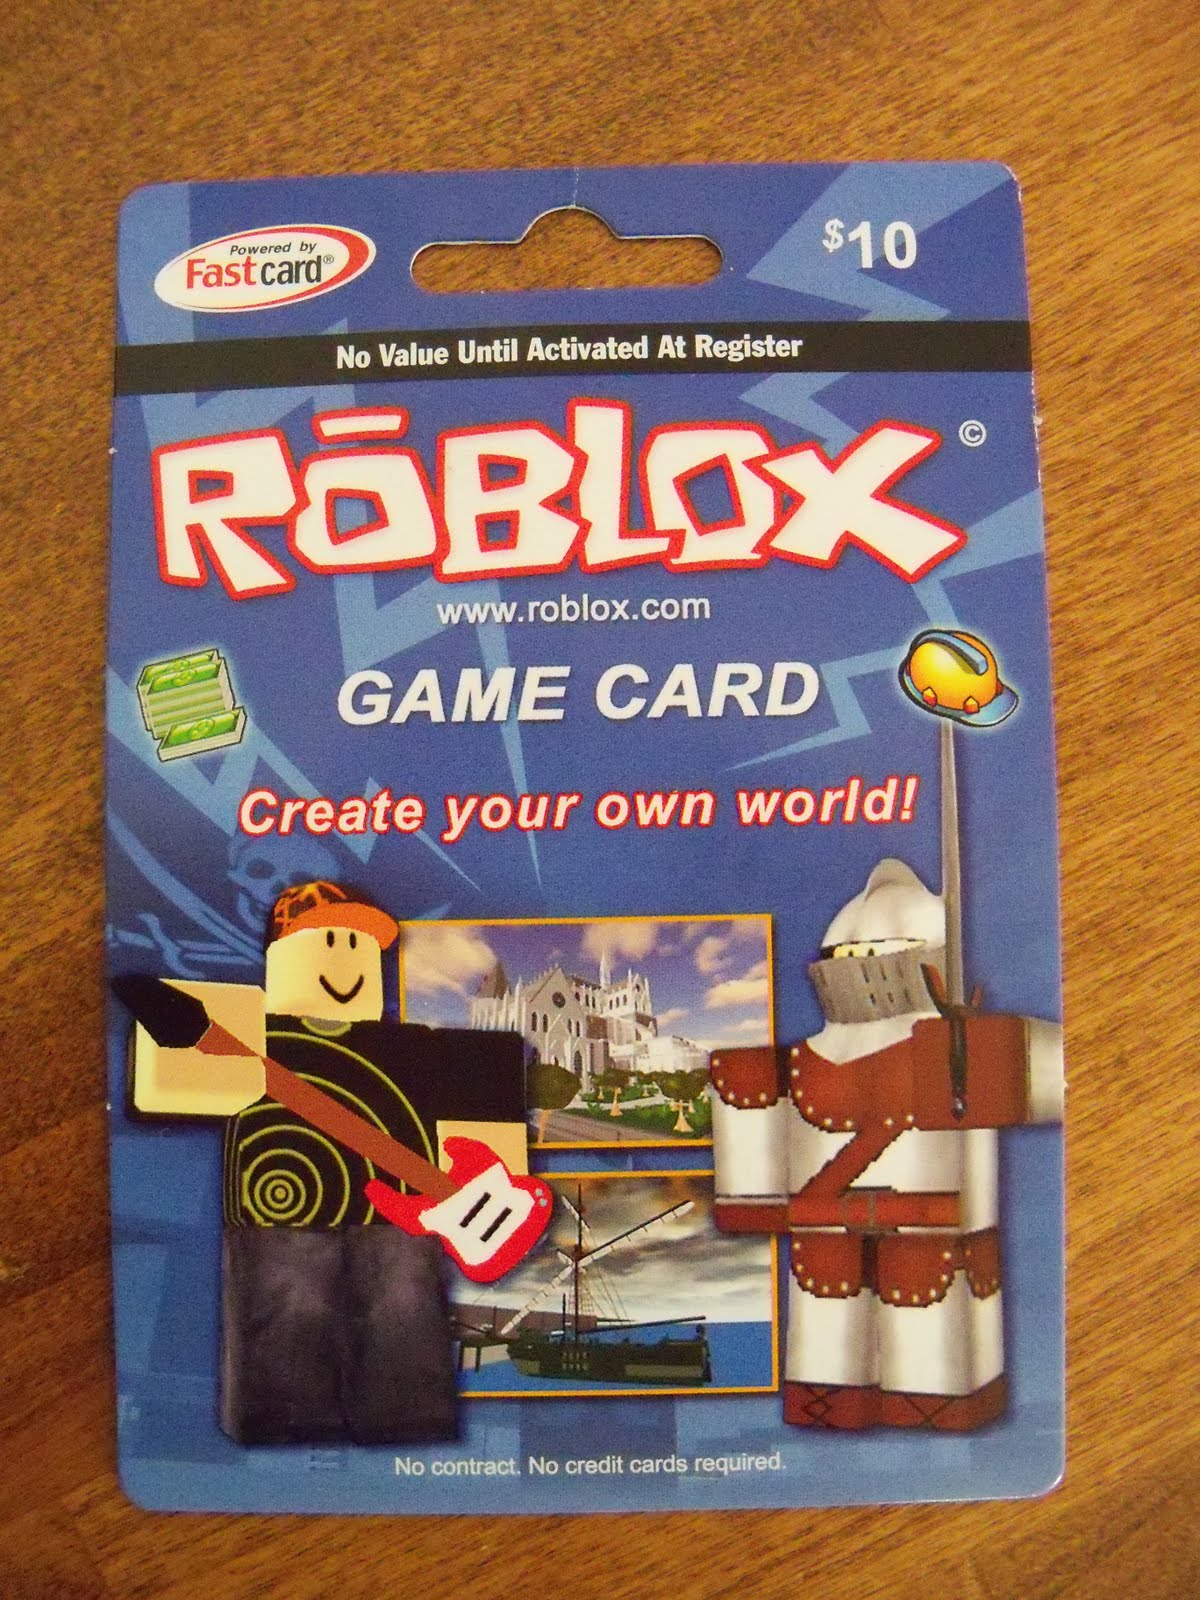 Savings Chatter: Best Buy - $10 Roblox Card for FREE!!